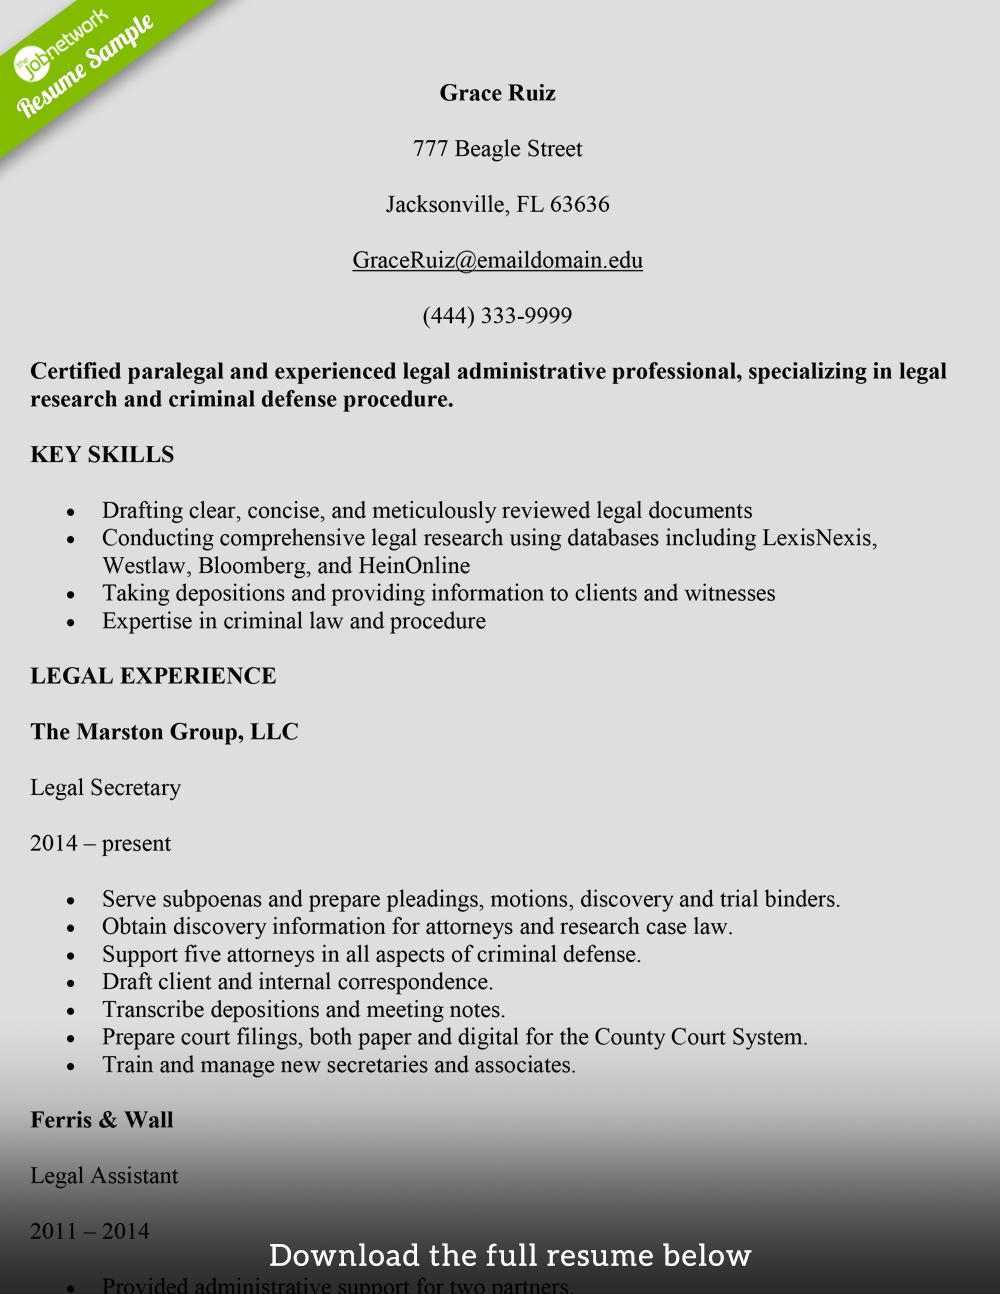 How to write a legal secretary resume (with examples)